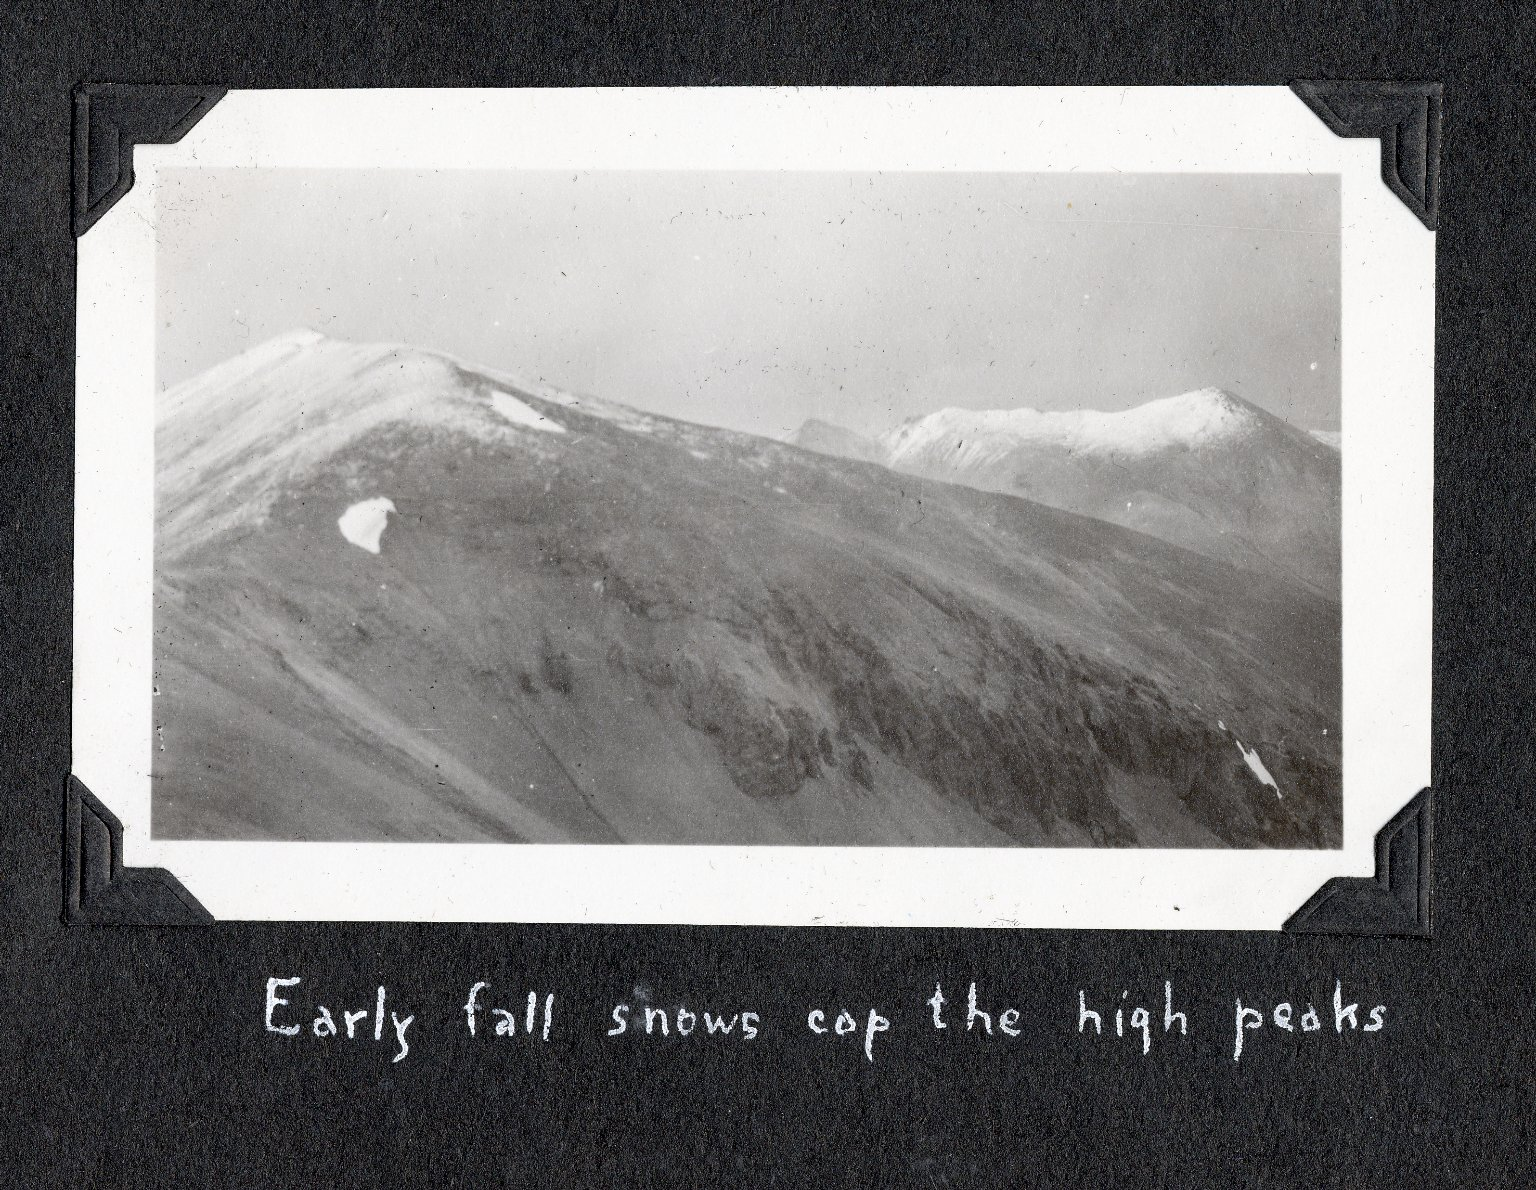 Early fall snows cap the high peaks